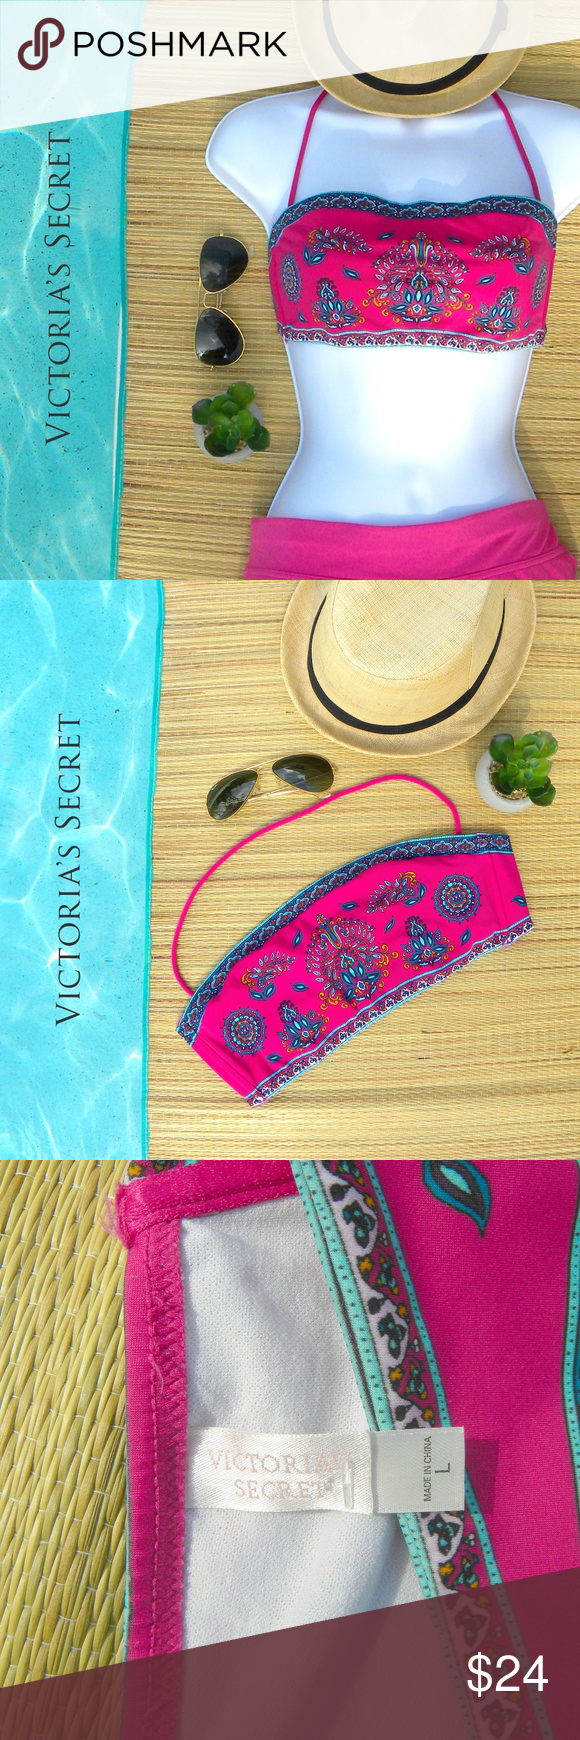 VICTORIA'S SECRET Bandeau Bikini Top Boho Pink This Victoria's Secret Bandeau Bikini top comes in a bright pink boho print. Ties at back in a fully adjustable scarf/bandana style. No cups or padding. Stays at sides. Detachable halter strap.  Fun for the beach, pool, or festival. EUC. Victoria's Secret Swim Bikinis